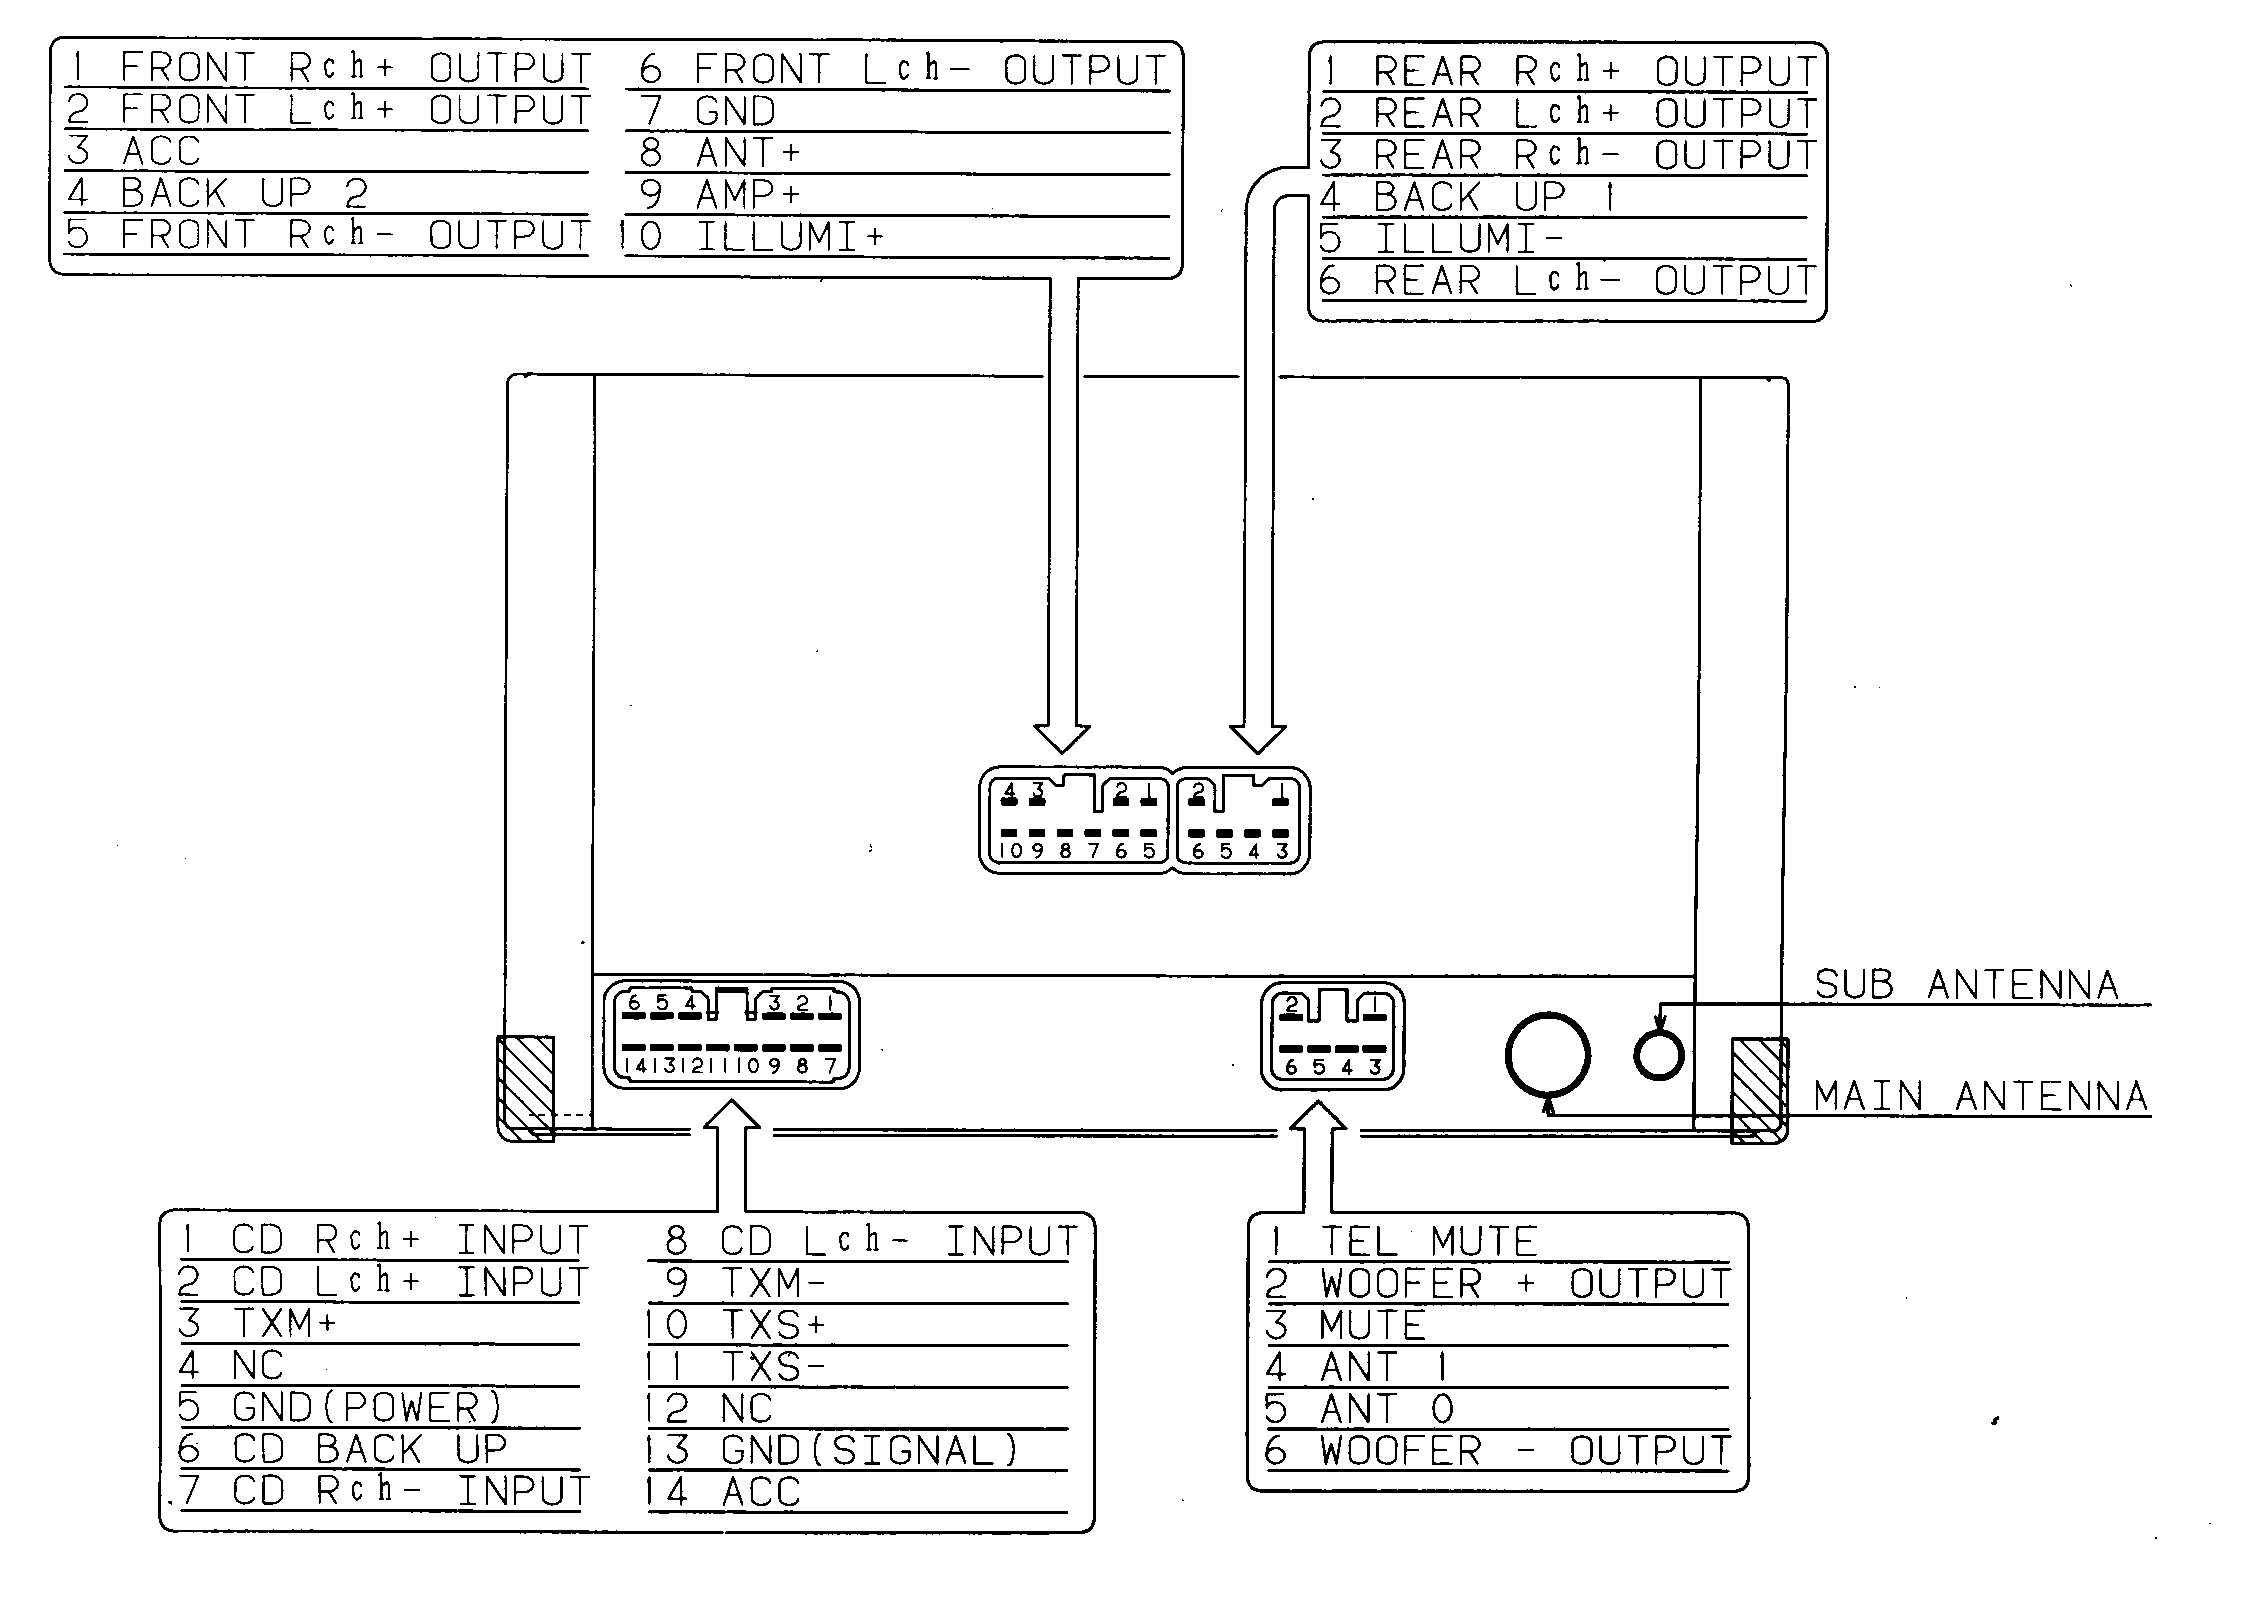 sony marine stereo wiring diagram Download-Wiring Diagram Detail Name sony marine 11-h